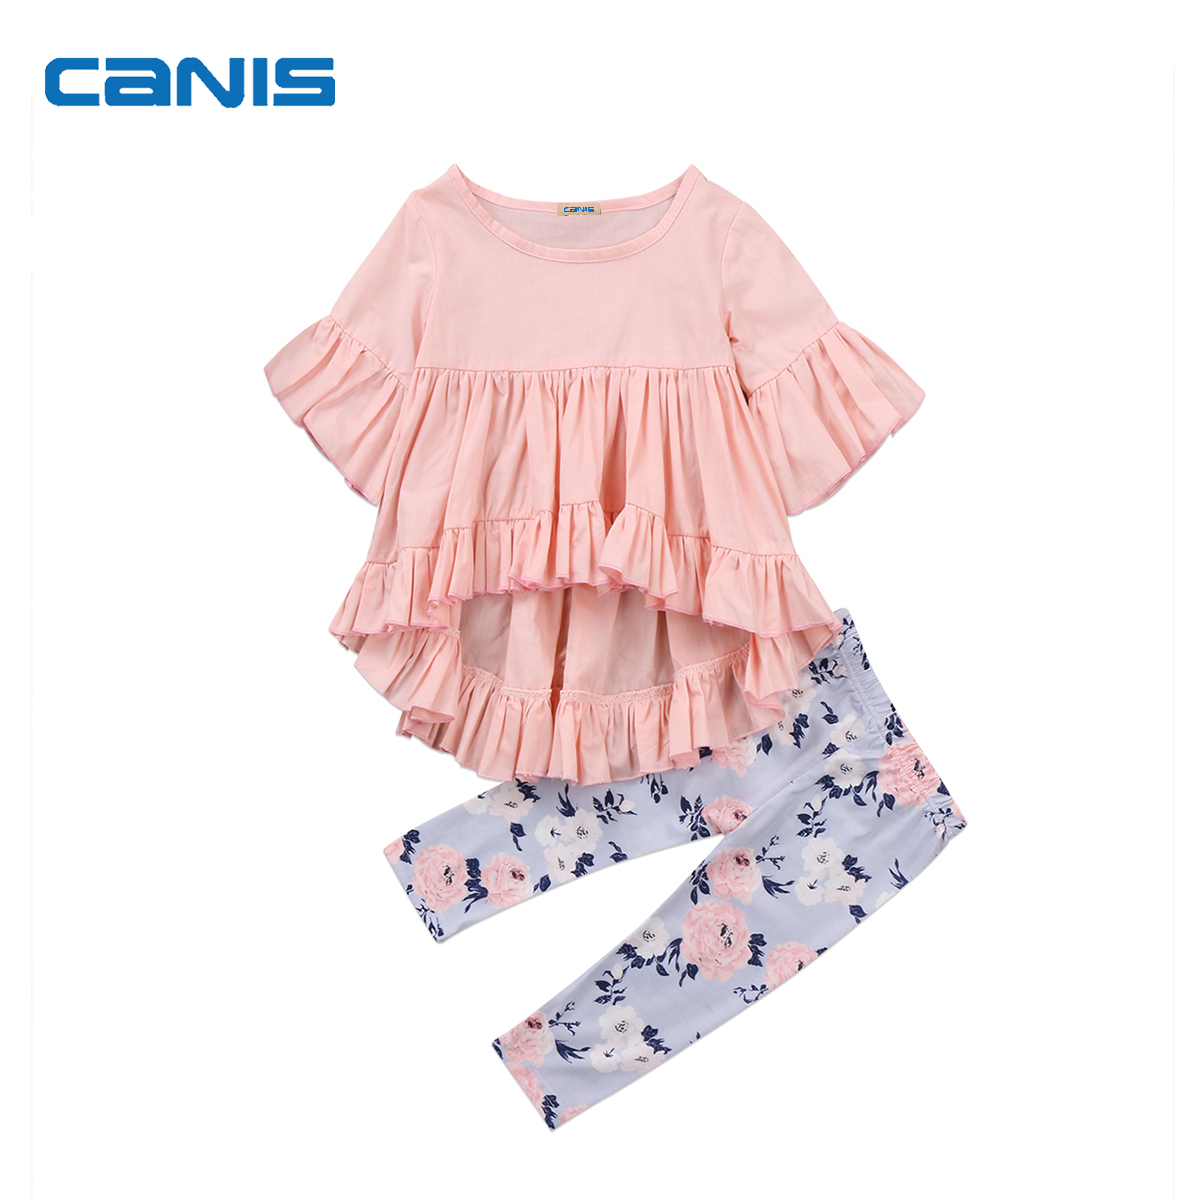 2017 New Brand Toddler Infant Newborn Kids Baby Girl Clothes Outfits T-shirt Top Pants Floral Trousers Ruffled 2Pcs Set 0-3T